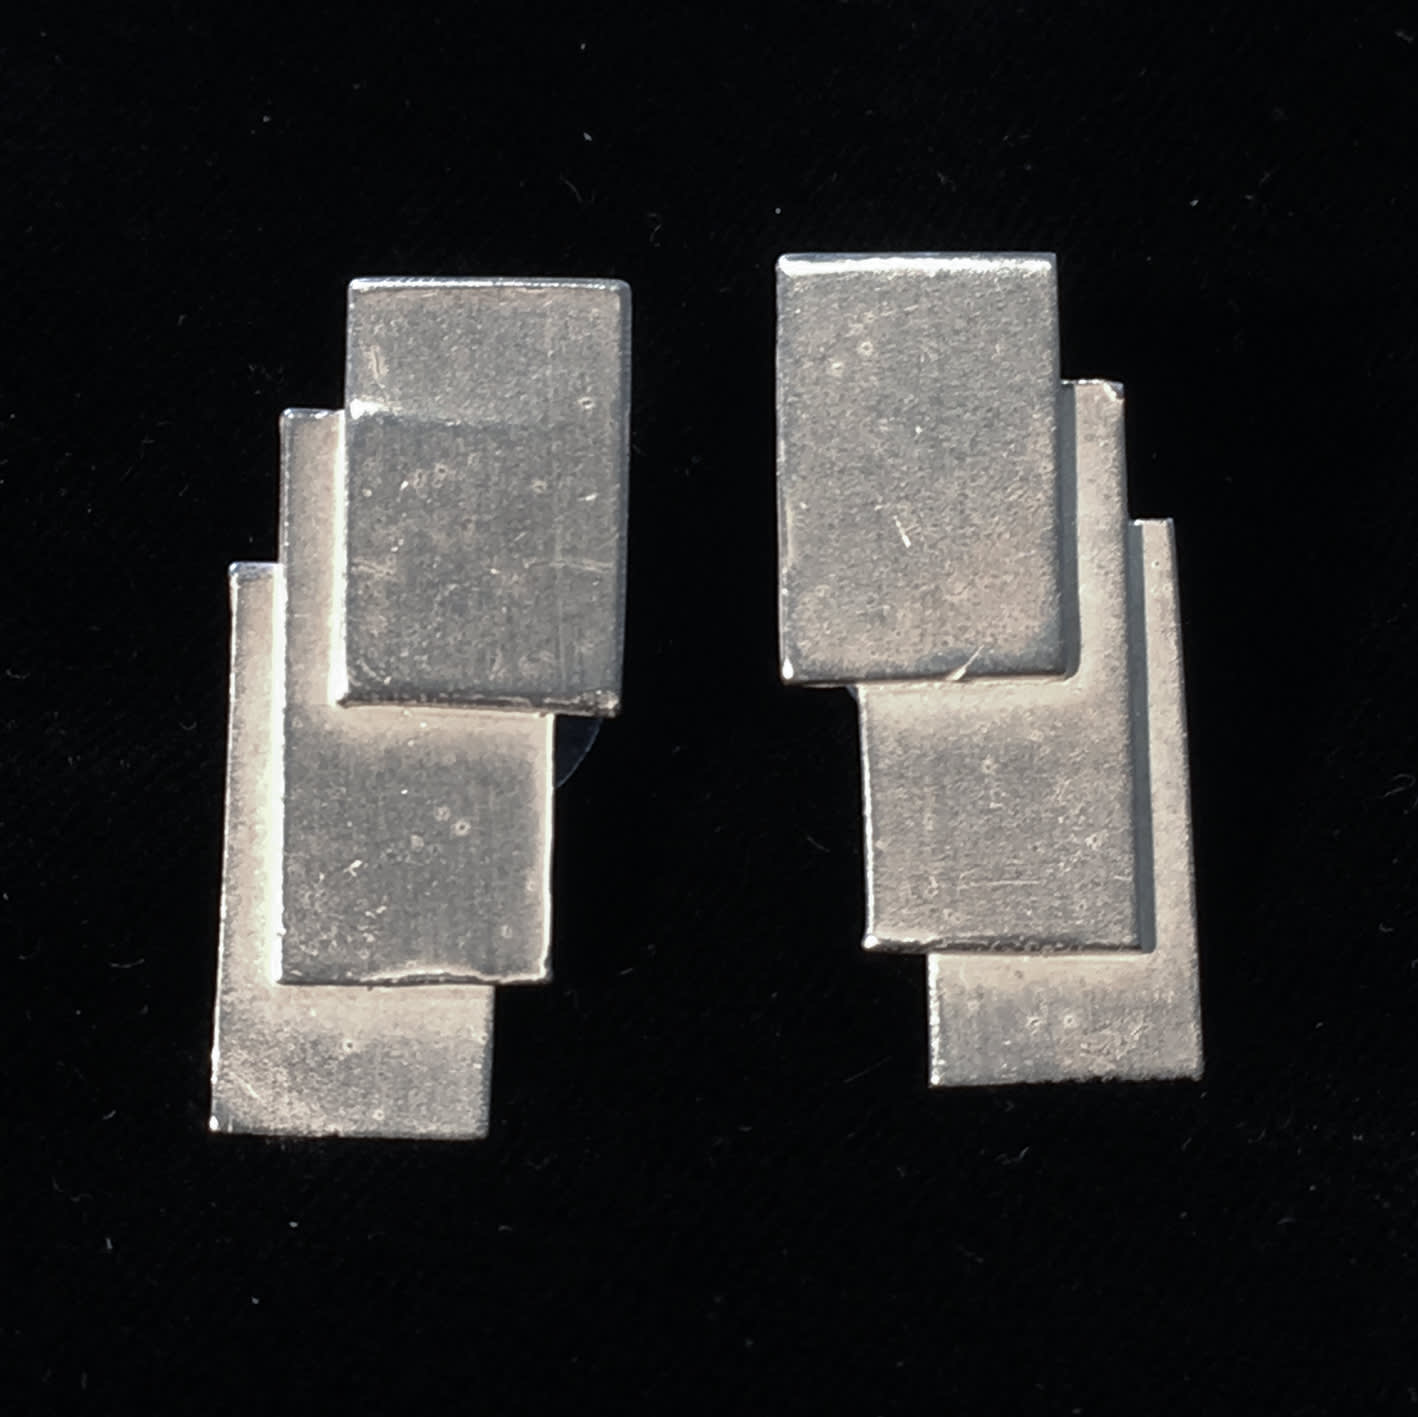 "<span class=""link fancybox-details-link""><a href=""/artists/186-helen-feiler/works/6753-helen-feiler-silver-geometric-stud-earrings-2019/"">View Detail Page</a></span><div class=""artist""><strong>Helen Feiler</strong></div> <div class=""title""><em>Silver 'Geometric' Stud Earrings</em>, 2019</div> <div class=""medium"">silver</div><div class=""copyright_line"">Own Art: £13.00 x 10 monthly payments</div>"